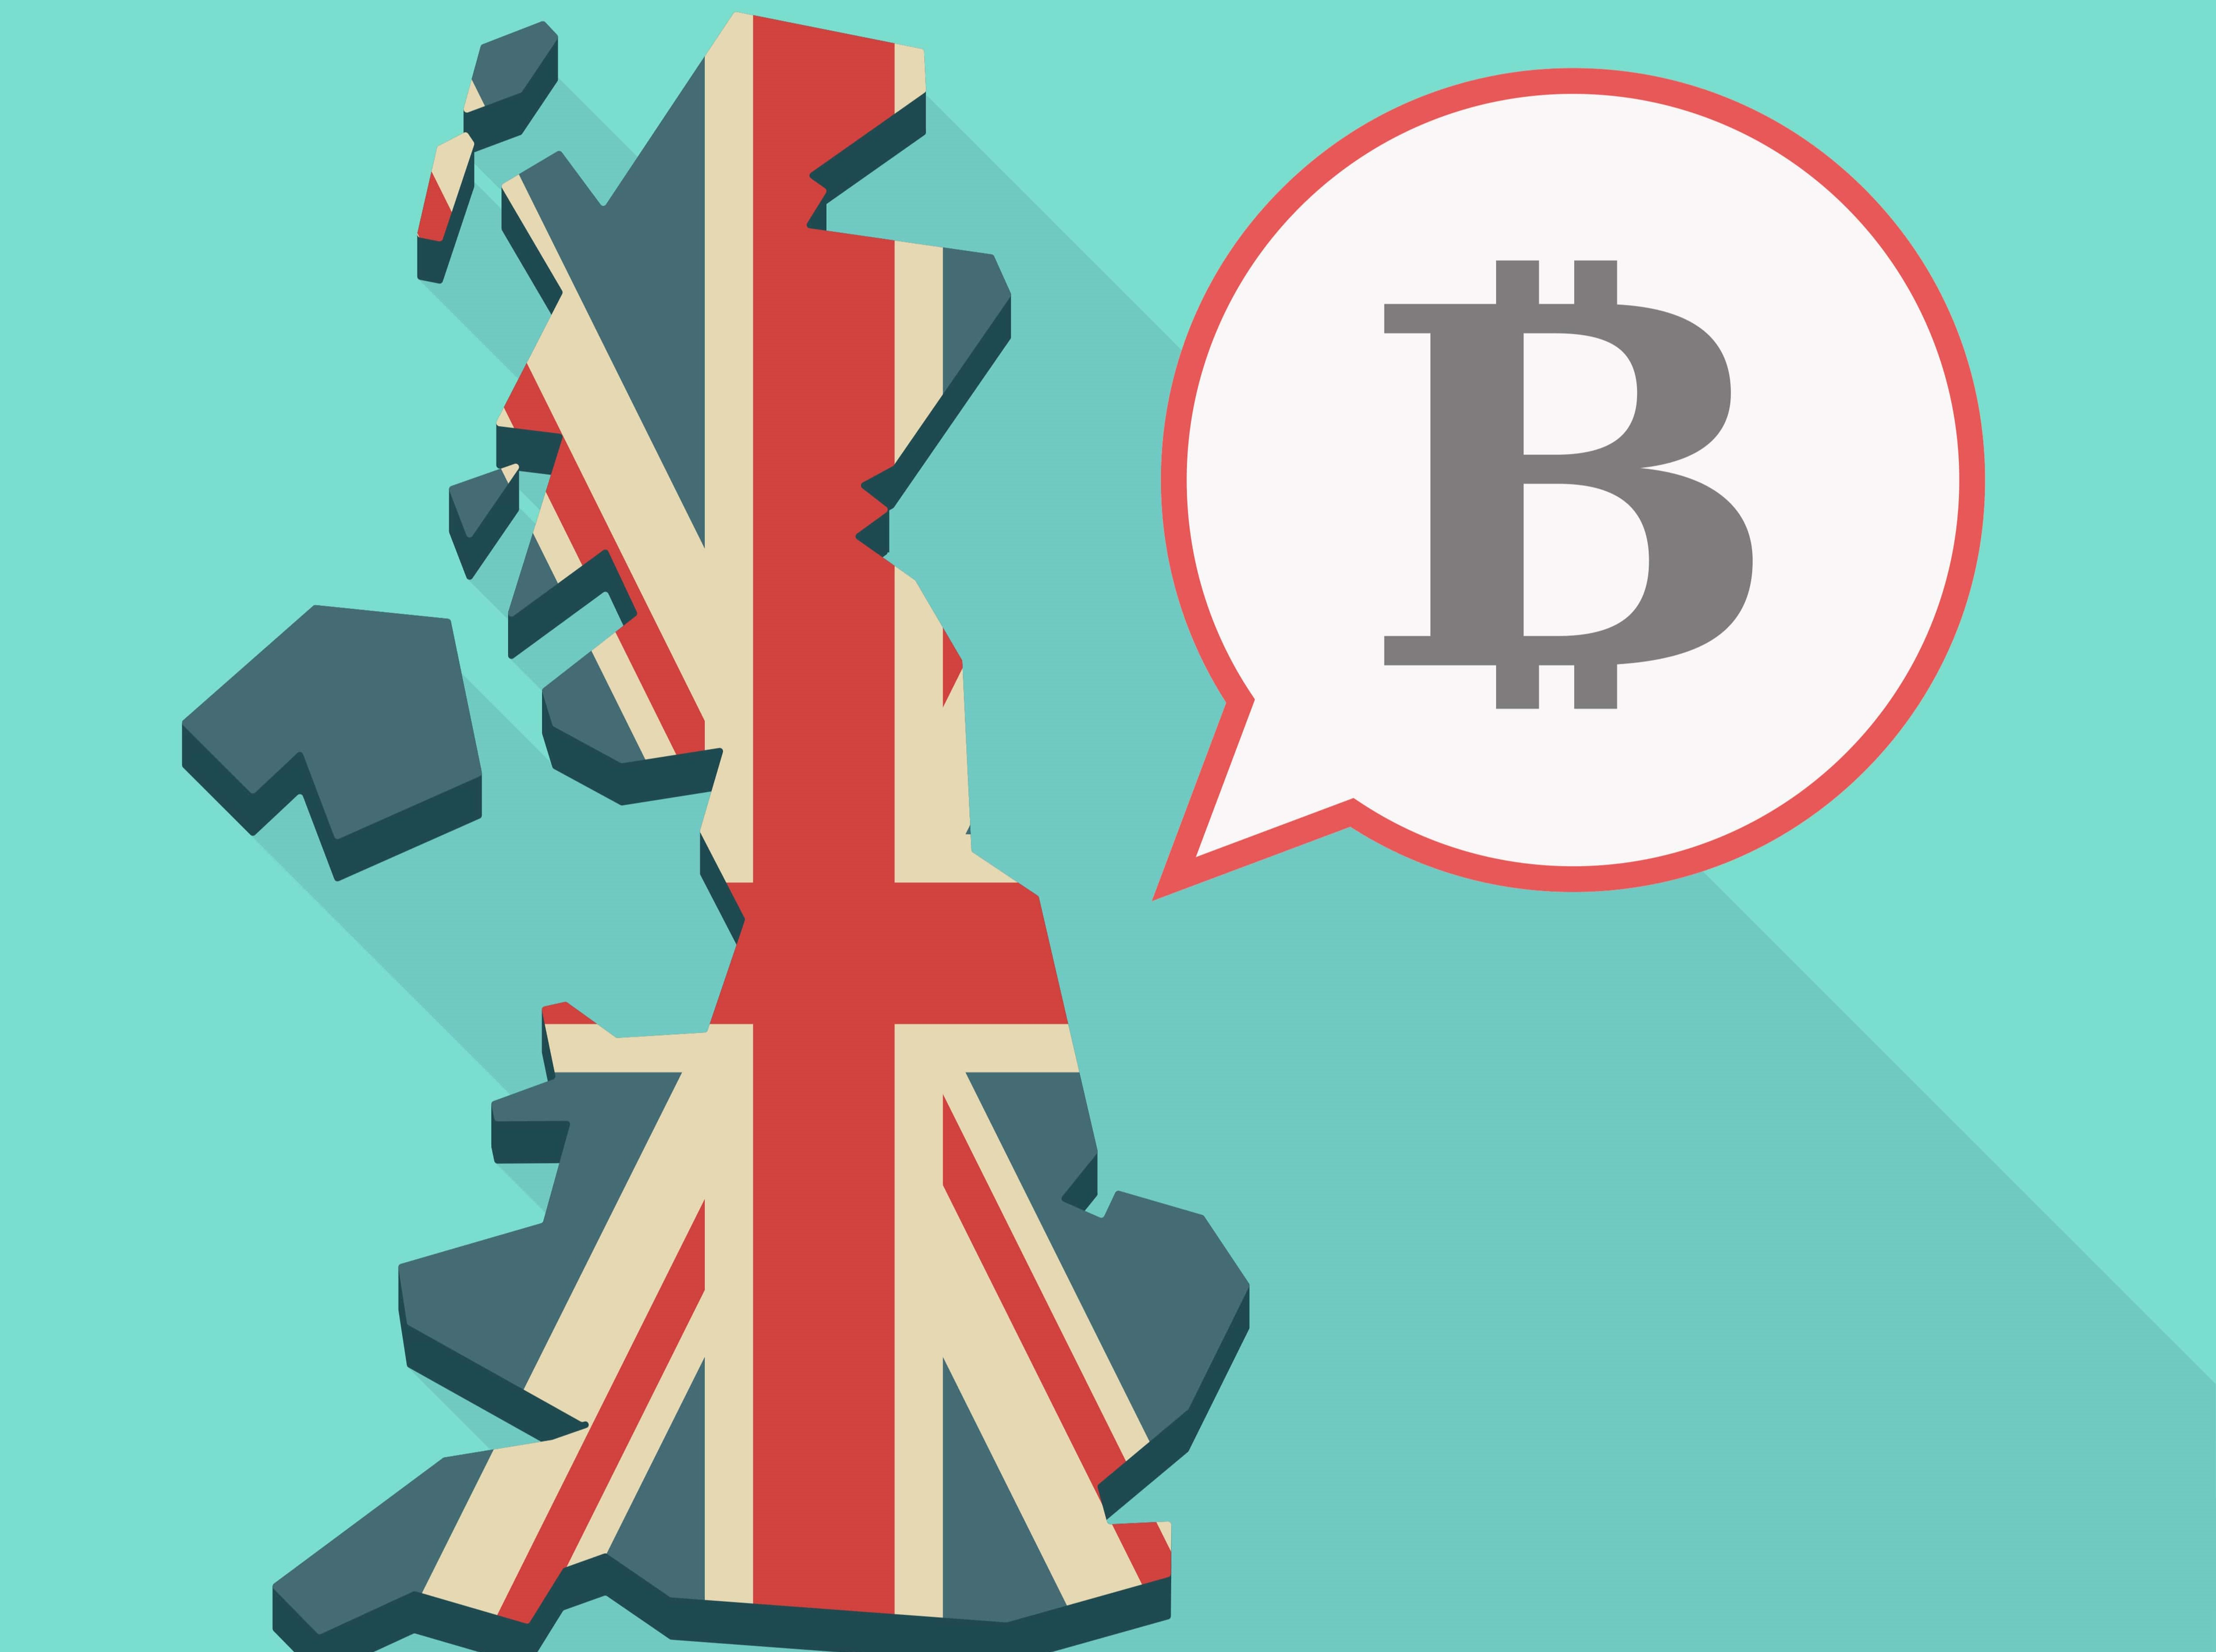 The Bank of England Might Soon Have Their Own Digital Currency